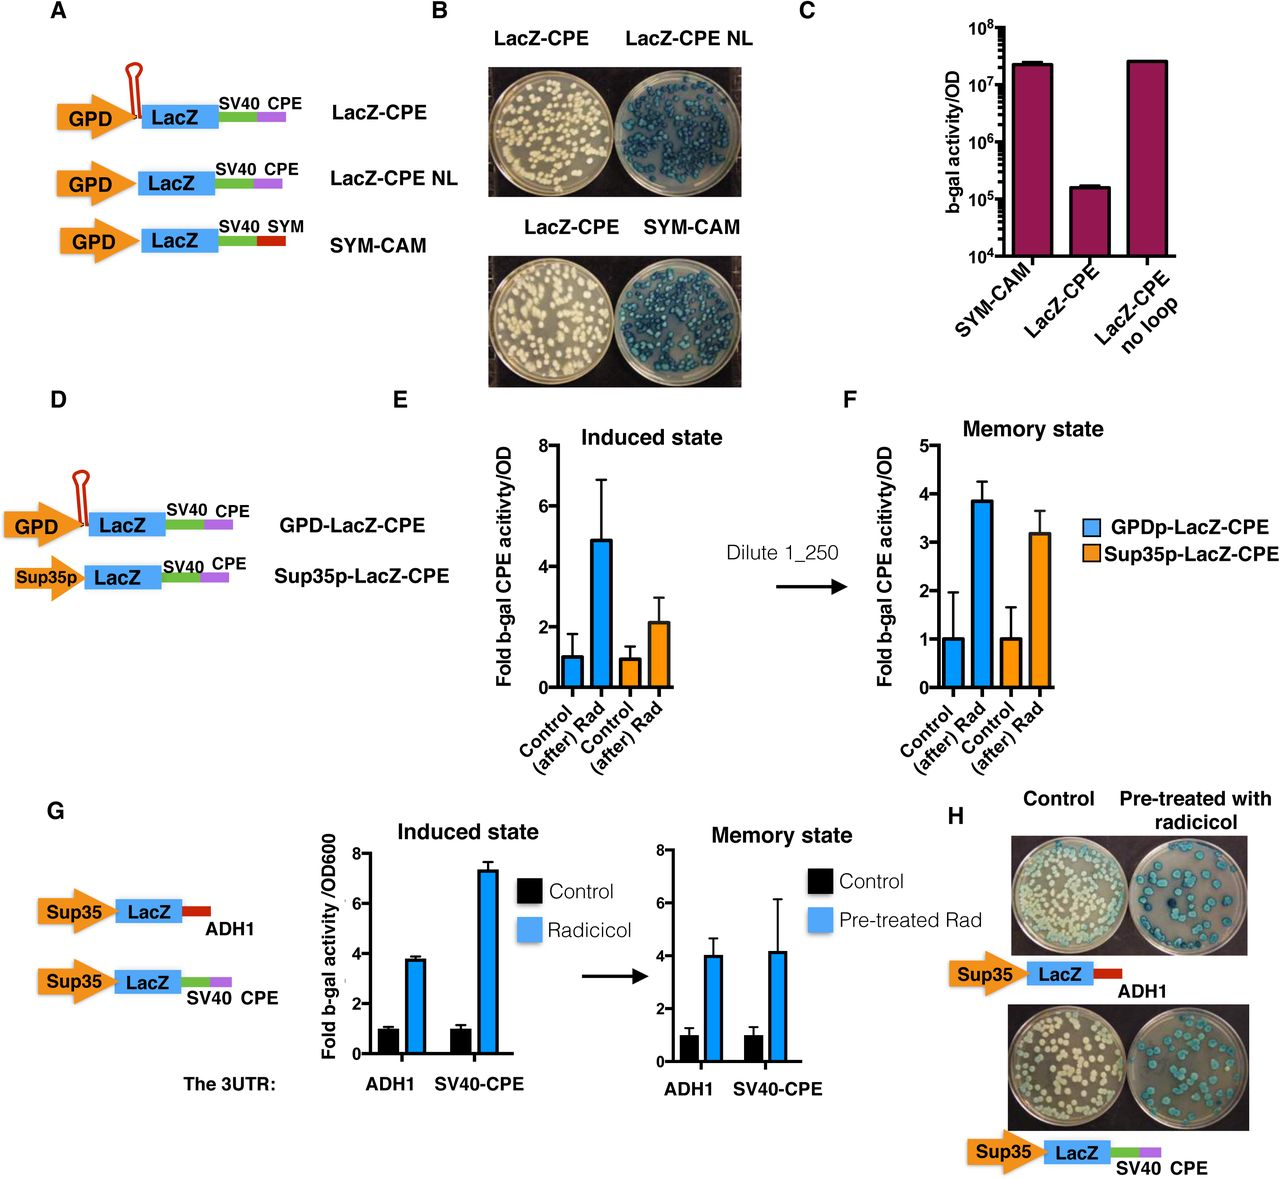 Transient Hsp90 suppression promotes a heritable change in protein